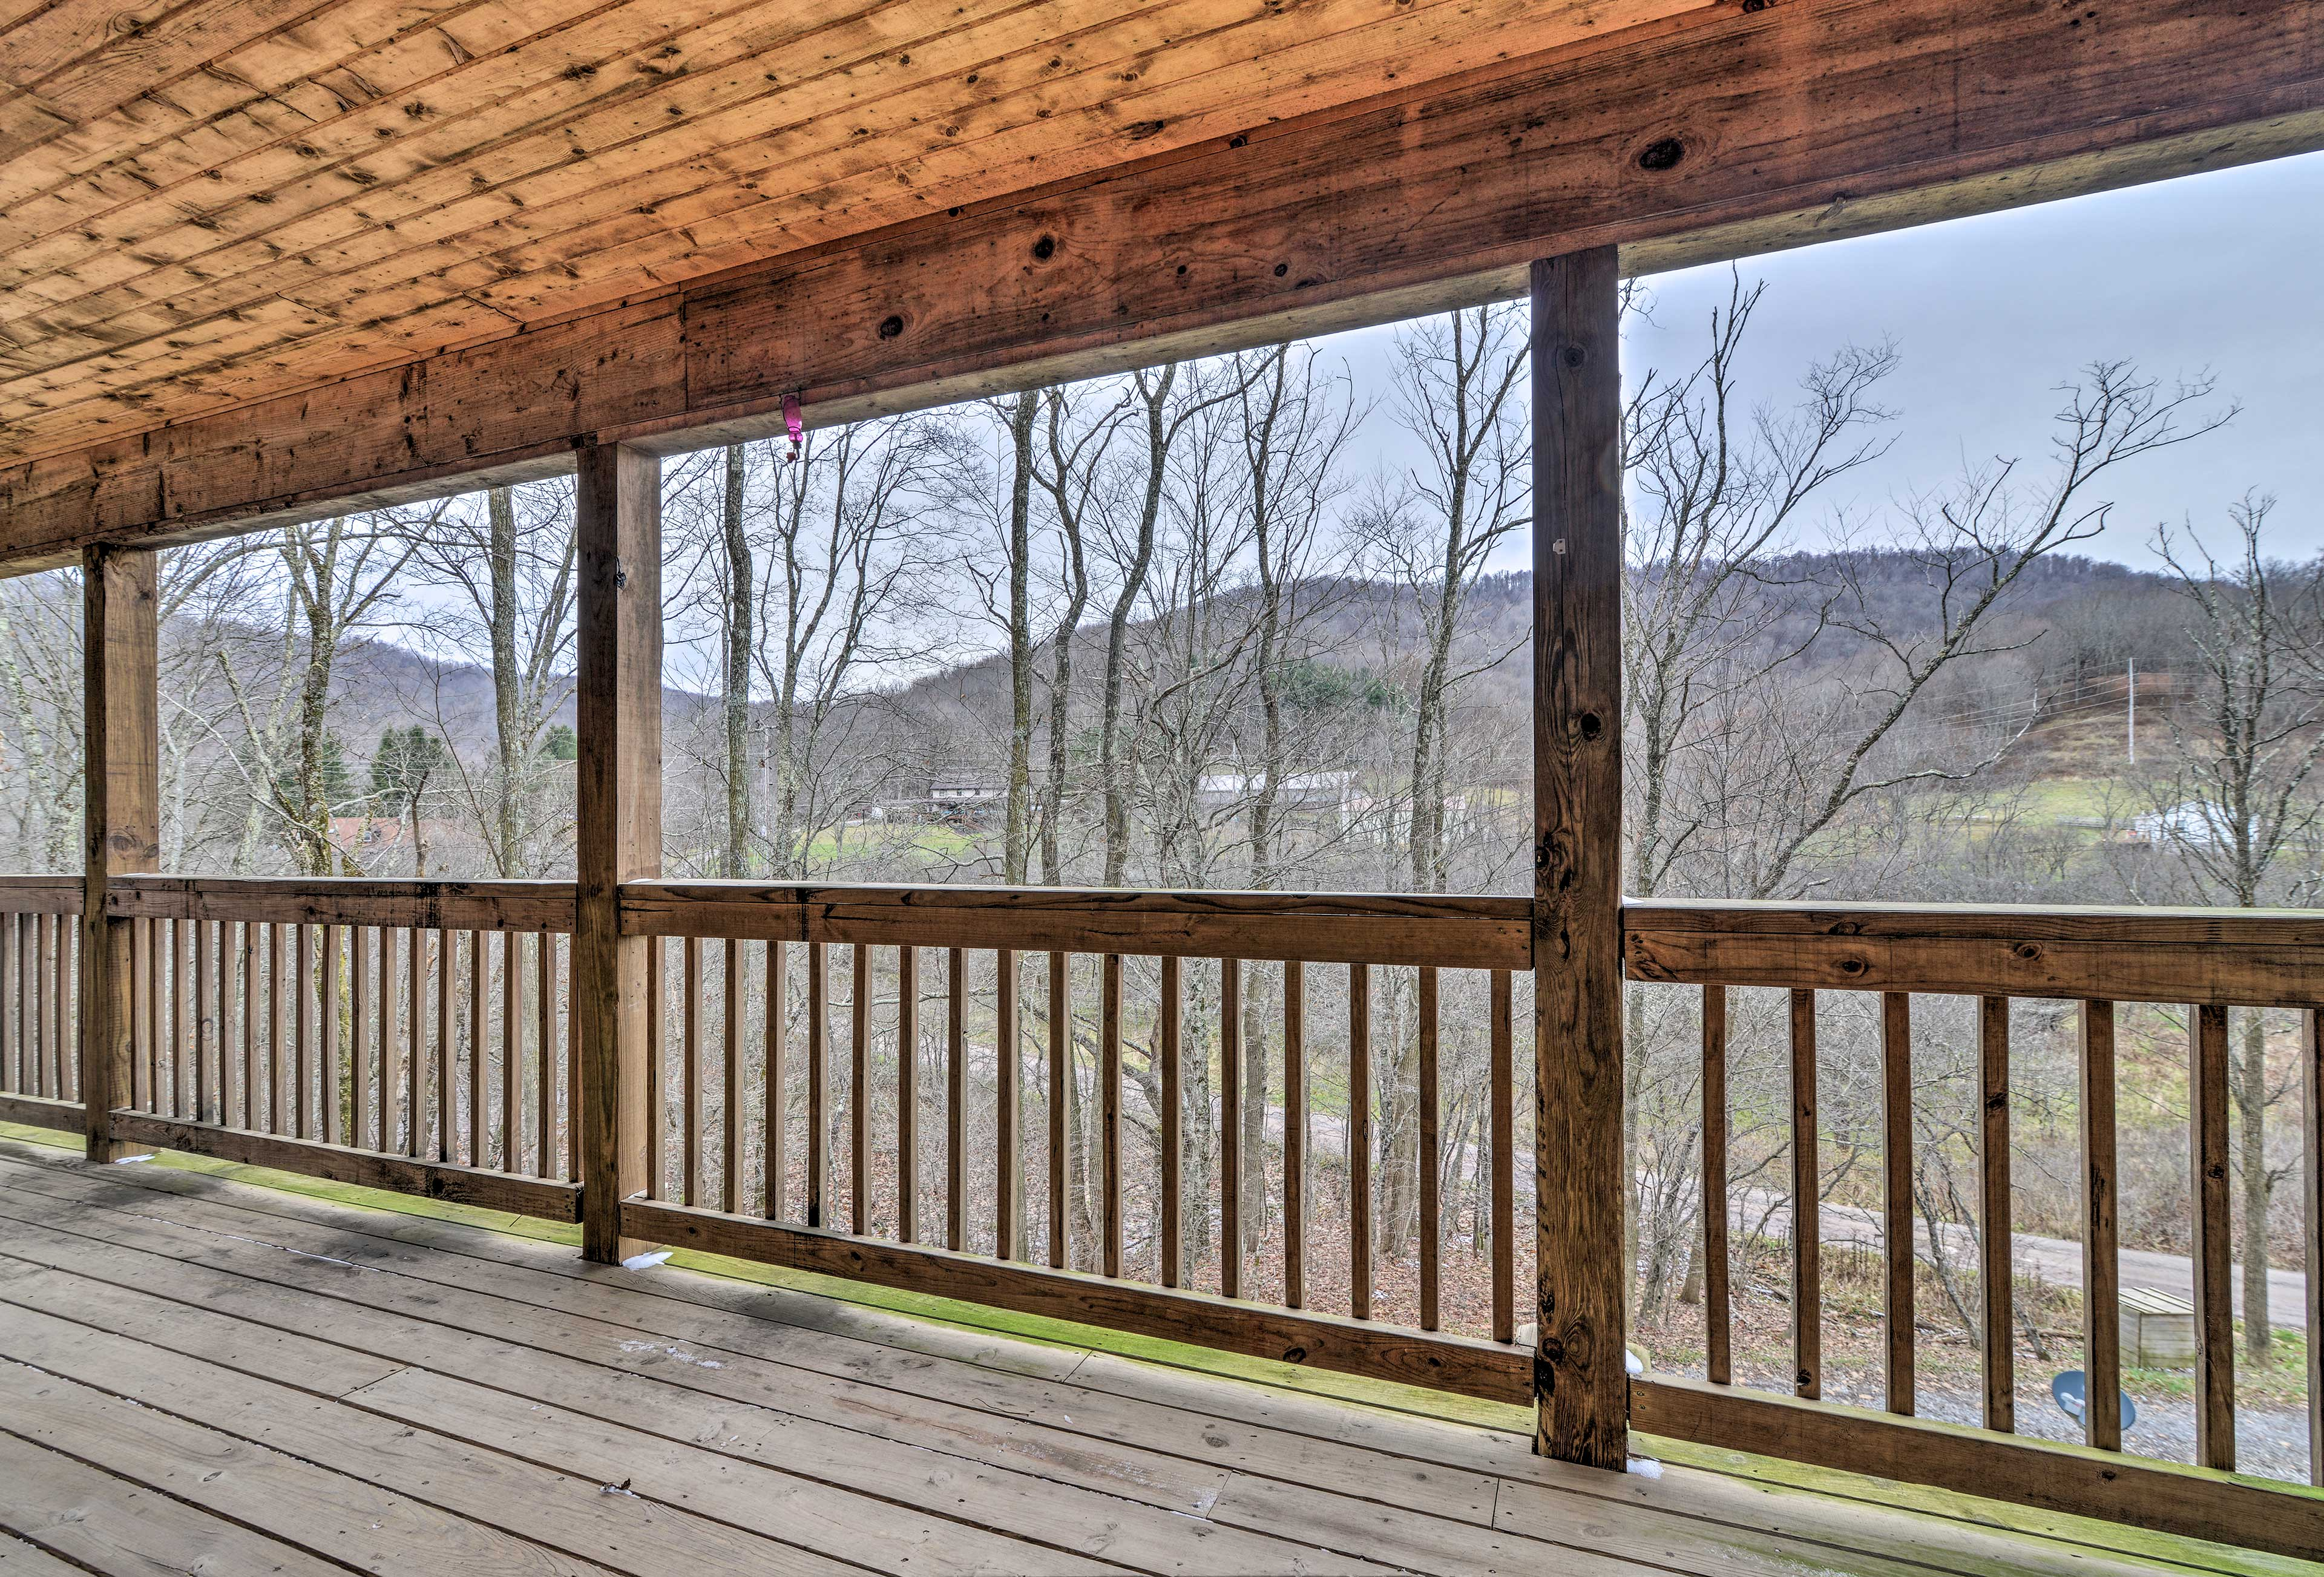 The cabin boasts beautiful mountain views from the private, covered balcony.